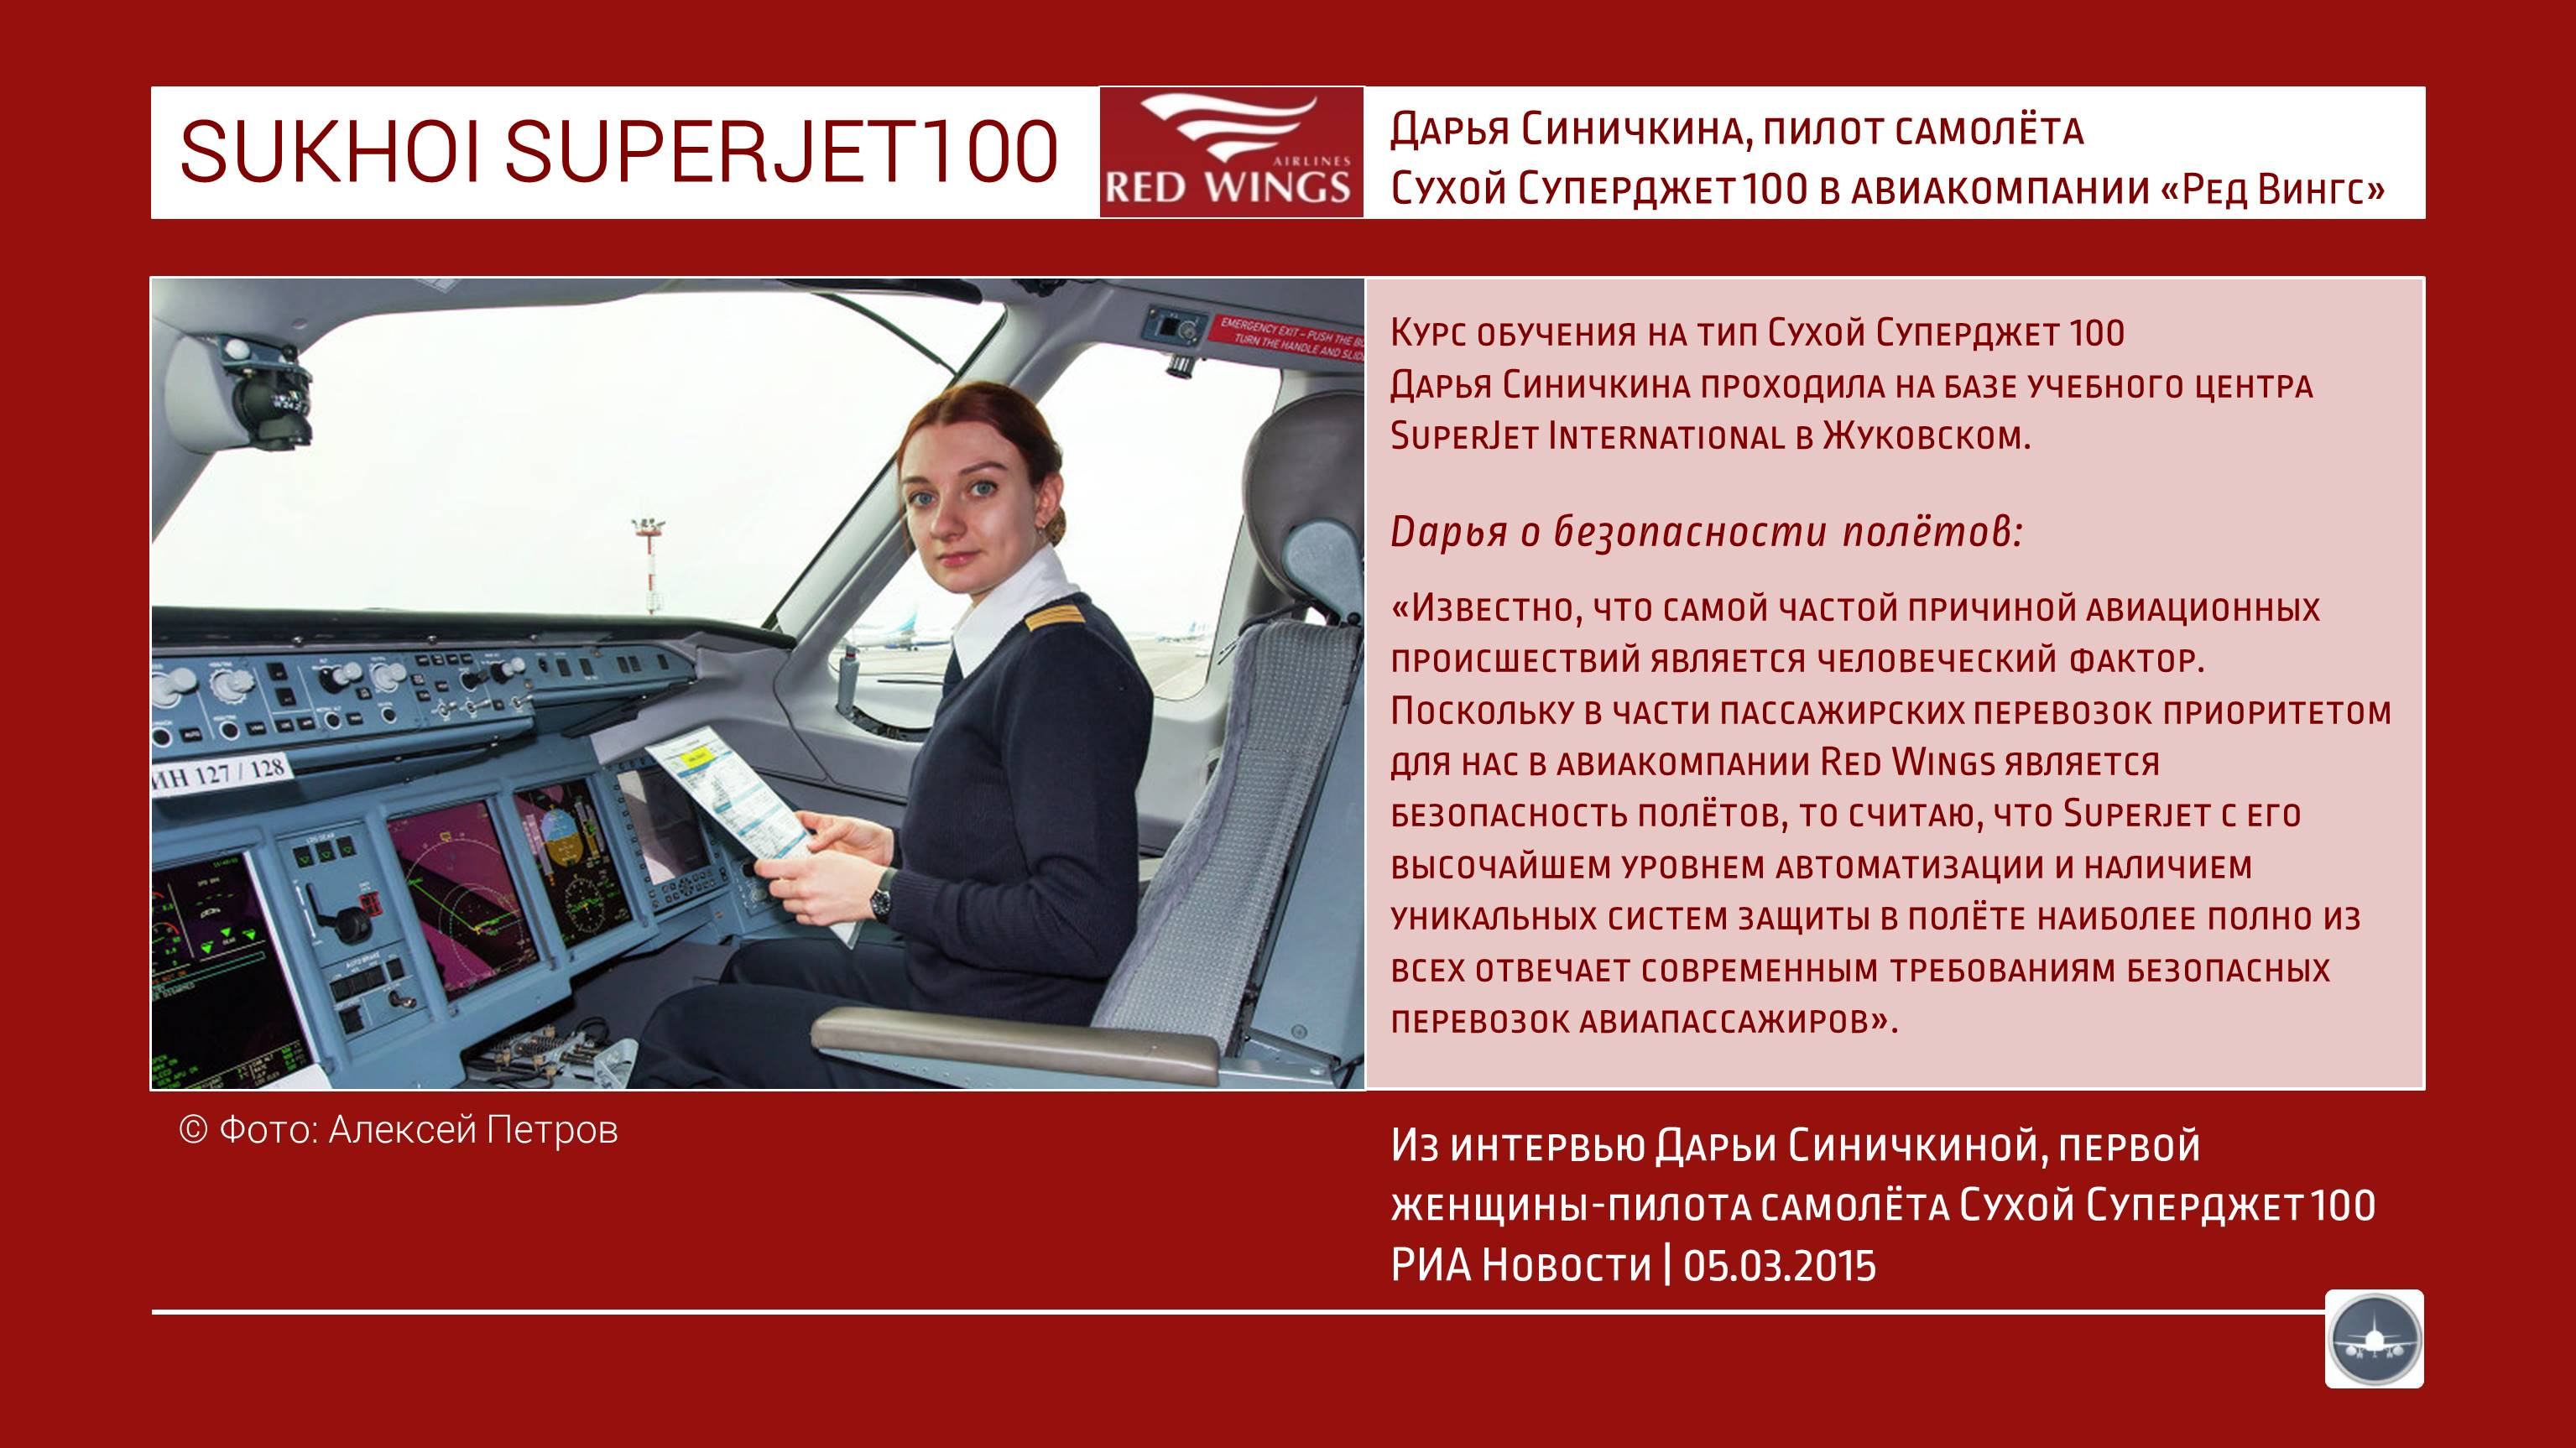 http://superjet.wdfiles.com/local--files/wiki:dara-sinickina-pervaa-pilot-zensina-samoleta-suhoj-supe/Sukhoi%20Superjet%20SSJ100%20RRJ95%20Red%20Wings%20Suchoi%20(3).JPG